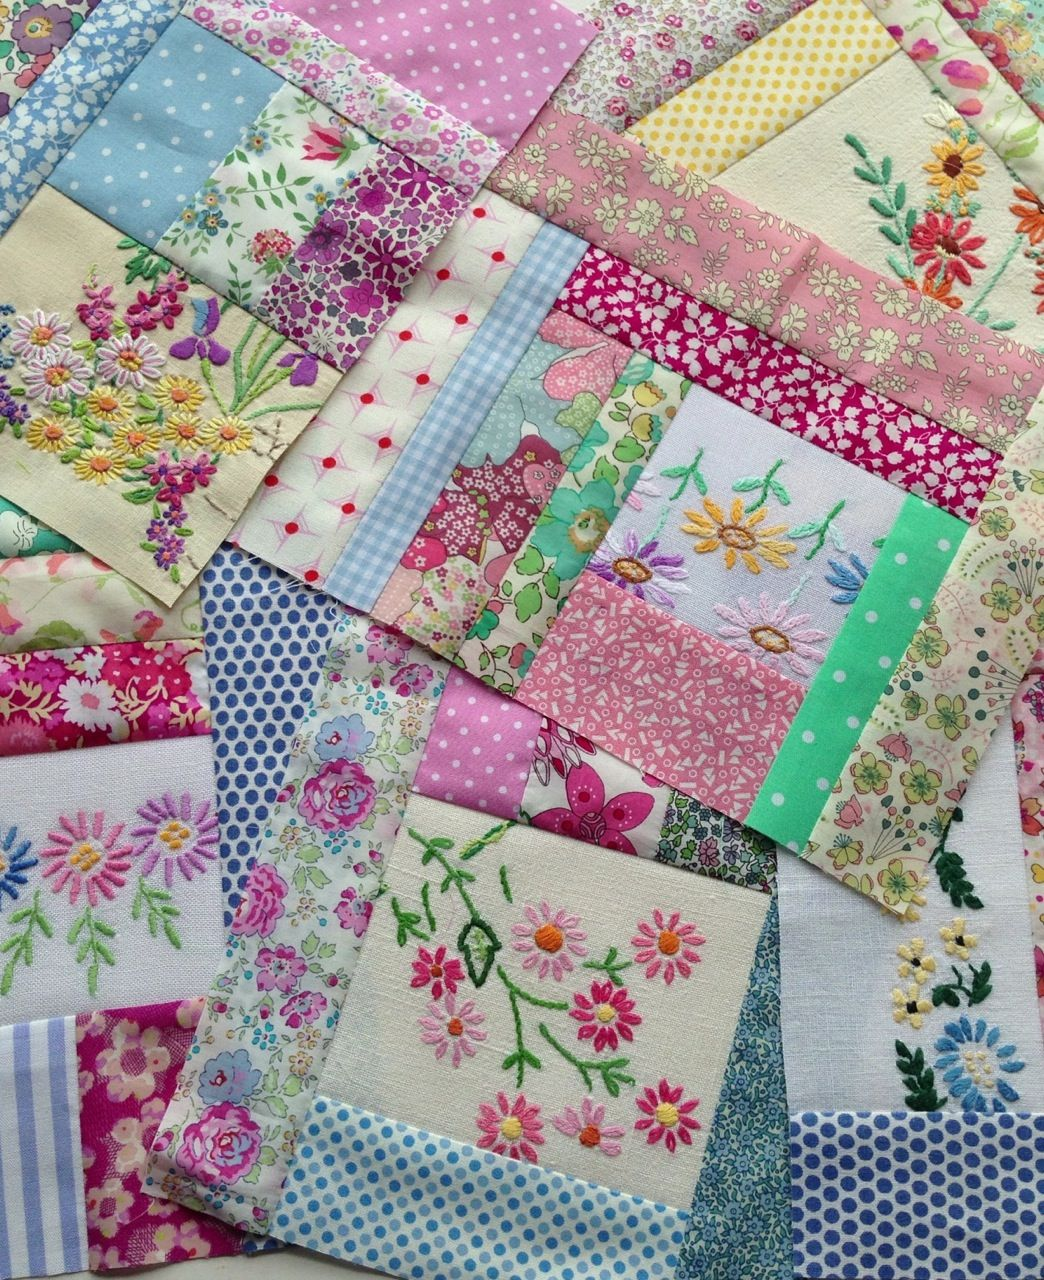 Quilt blocks built around embroidery cut from dresser